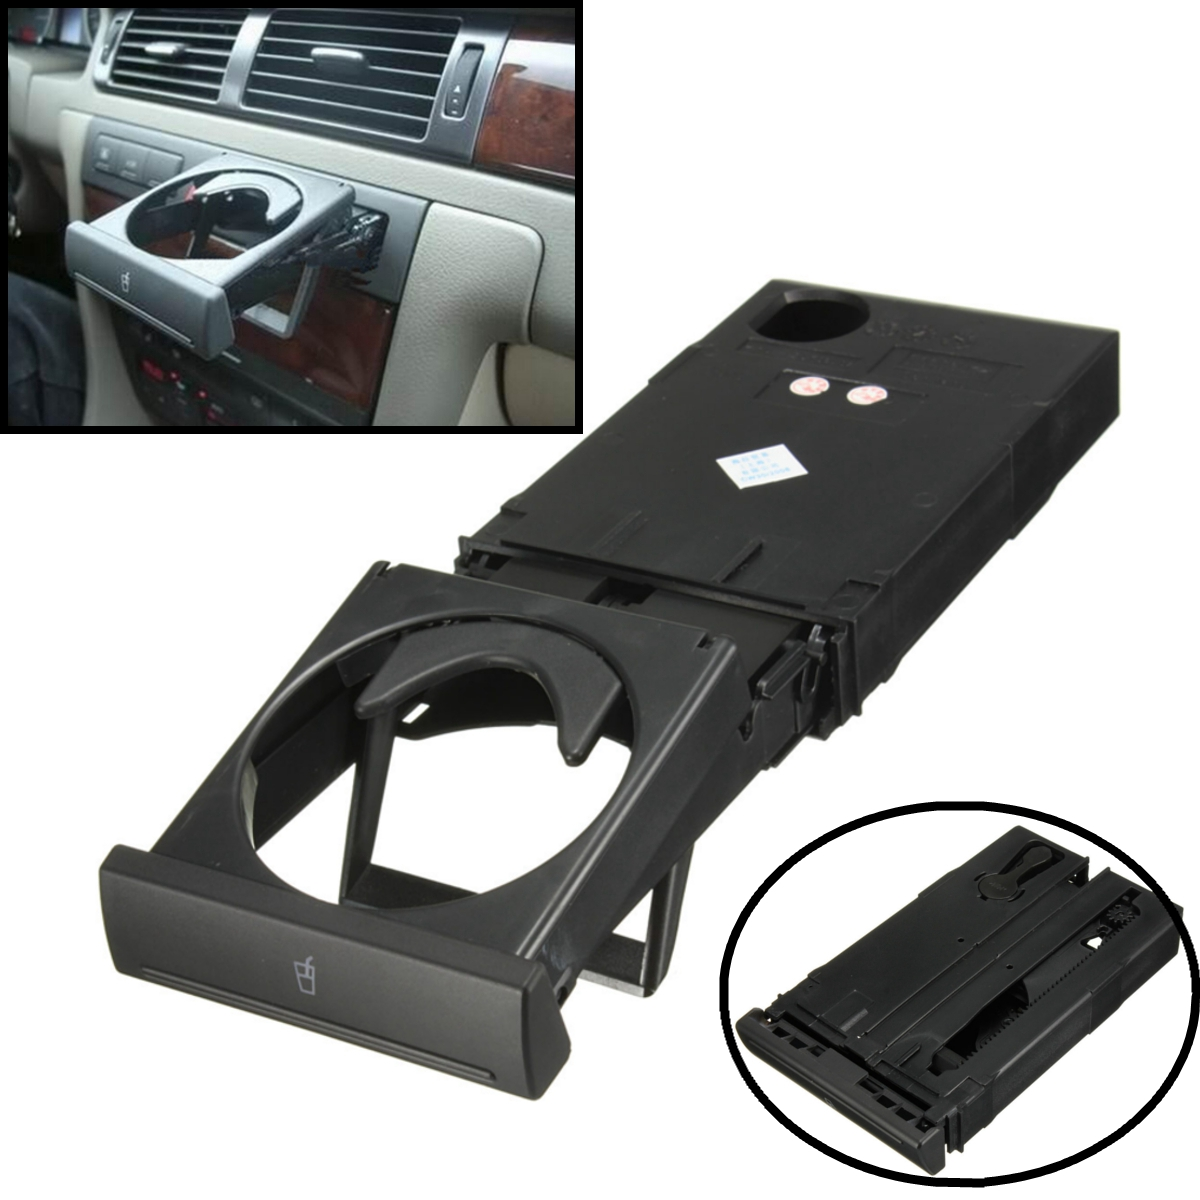 Car Auto Drink Cup Bottle Holder Stand For Audi C5A6 98-05 A4B6 98-02 4B0862534D